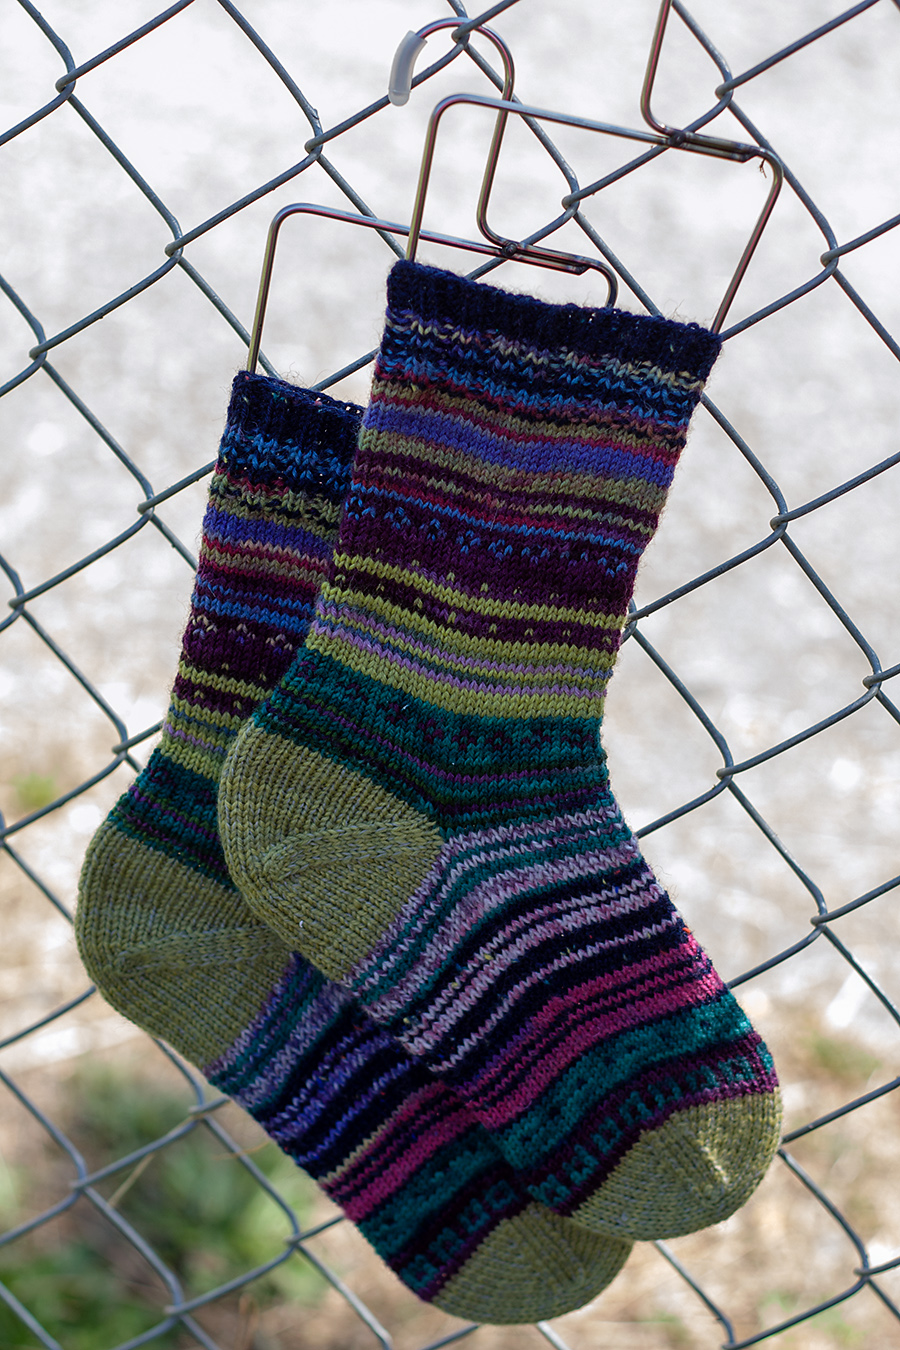 Chicken soup designs colorful patchwork socks a free pattern if you enjoy scrappy socks and want to knit up a couple pairs of your own ive written a simple pattern for these socks that you are free to download bankloansurffo Image collections